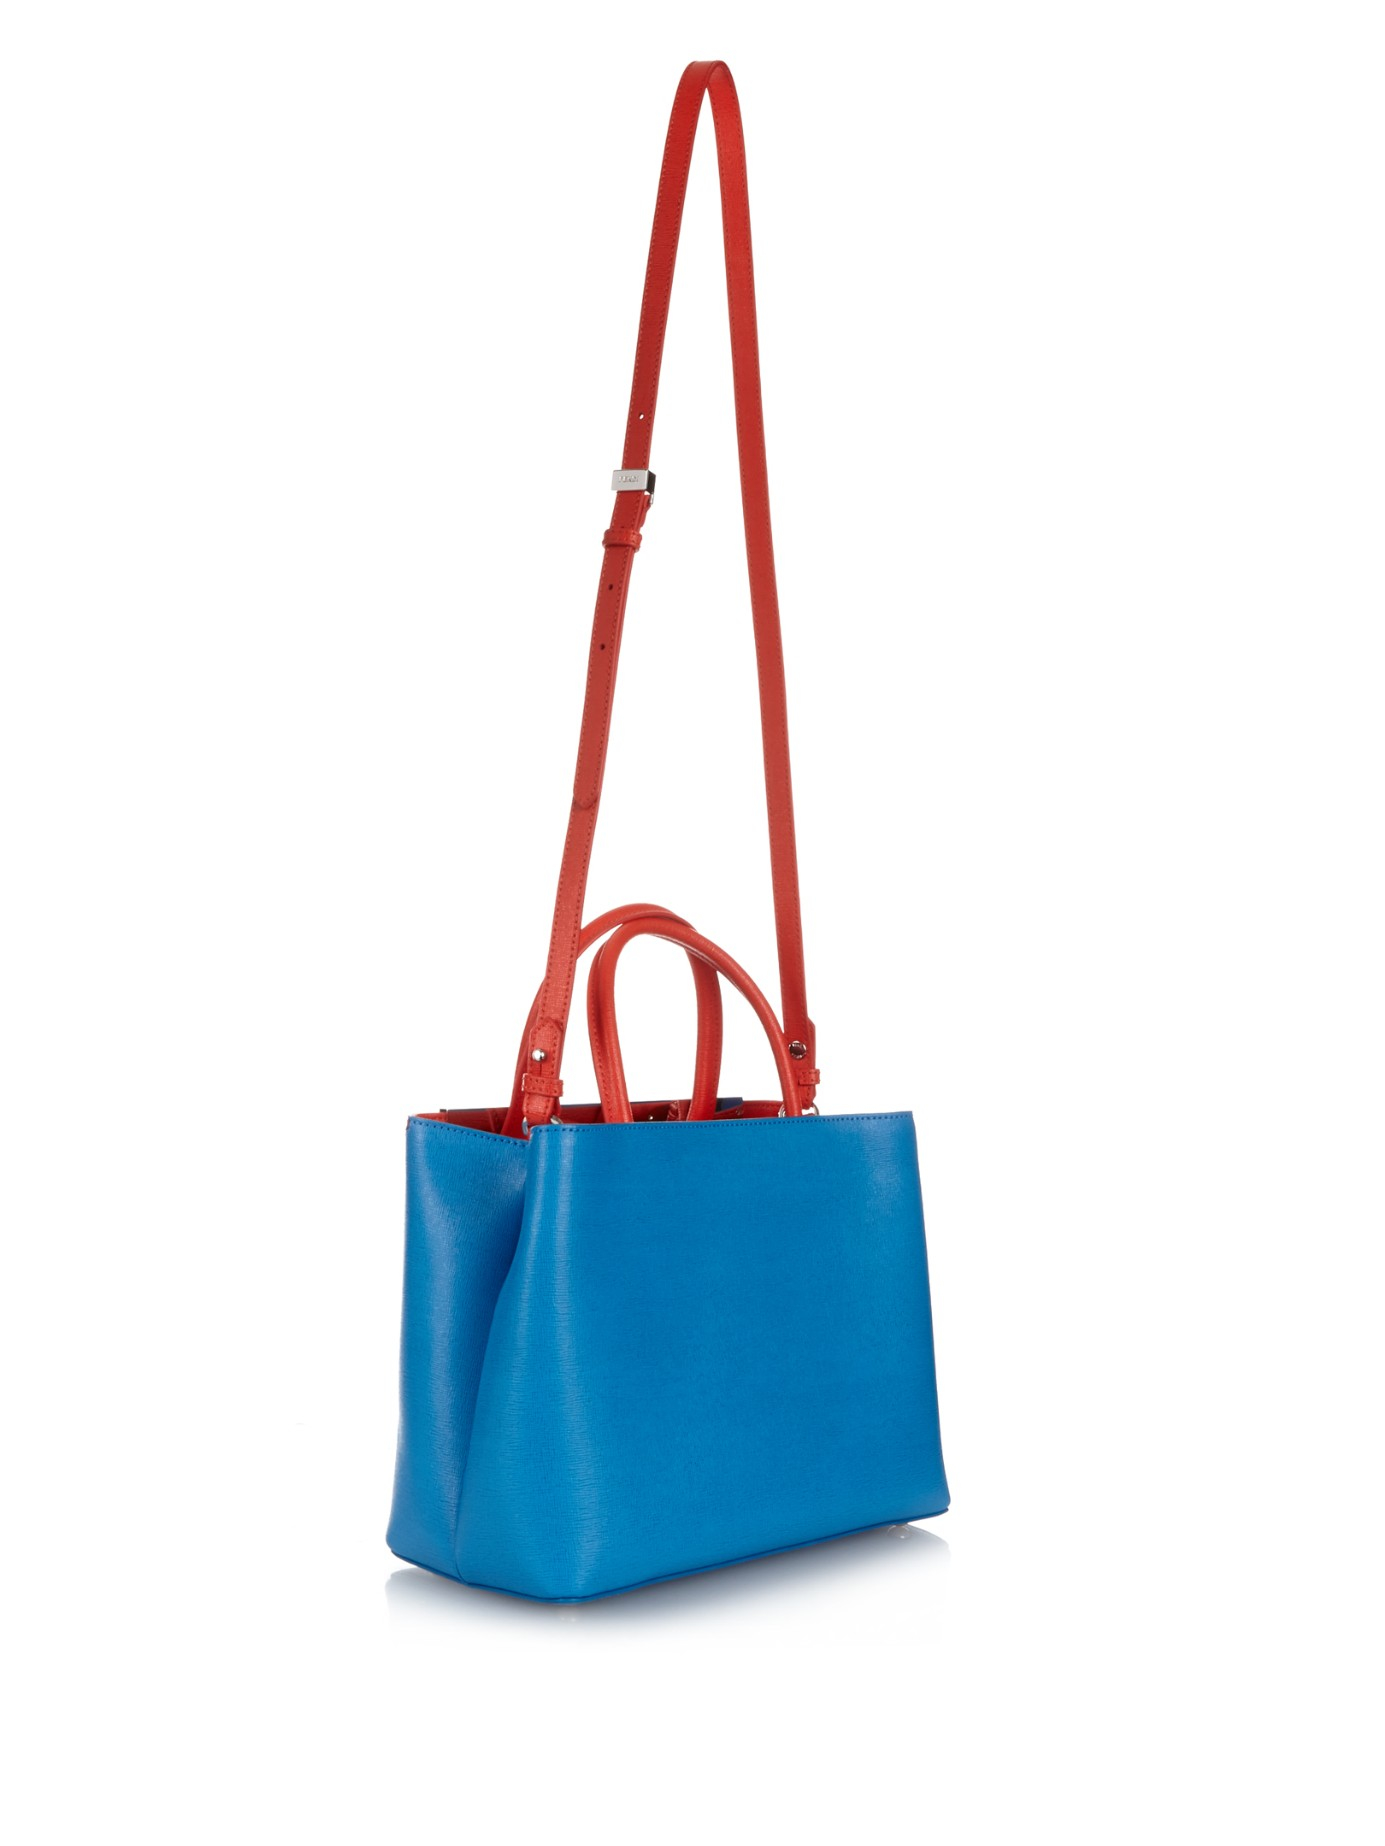 Lyst - Fendi Petite 2Jours Bag Bugs Leather Cross-Body Bag in Blue a834ab03c3e91